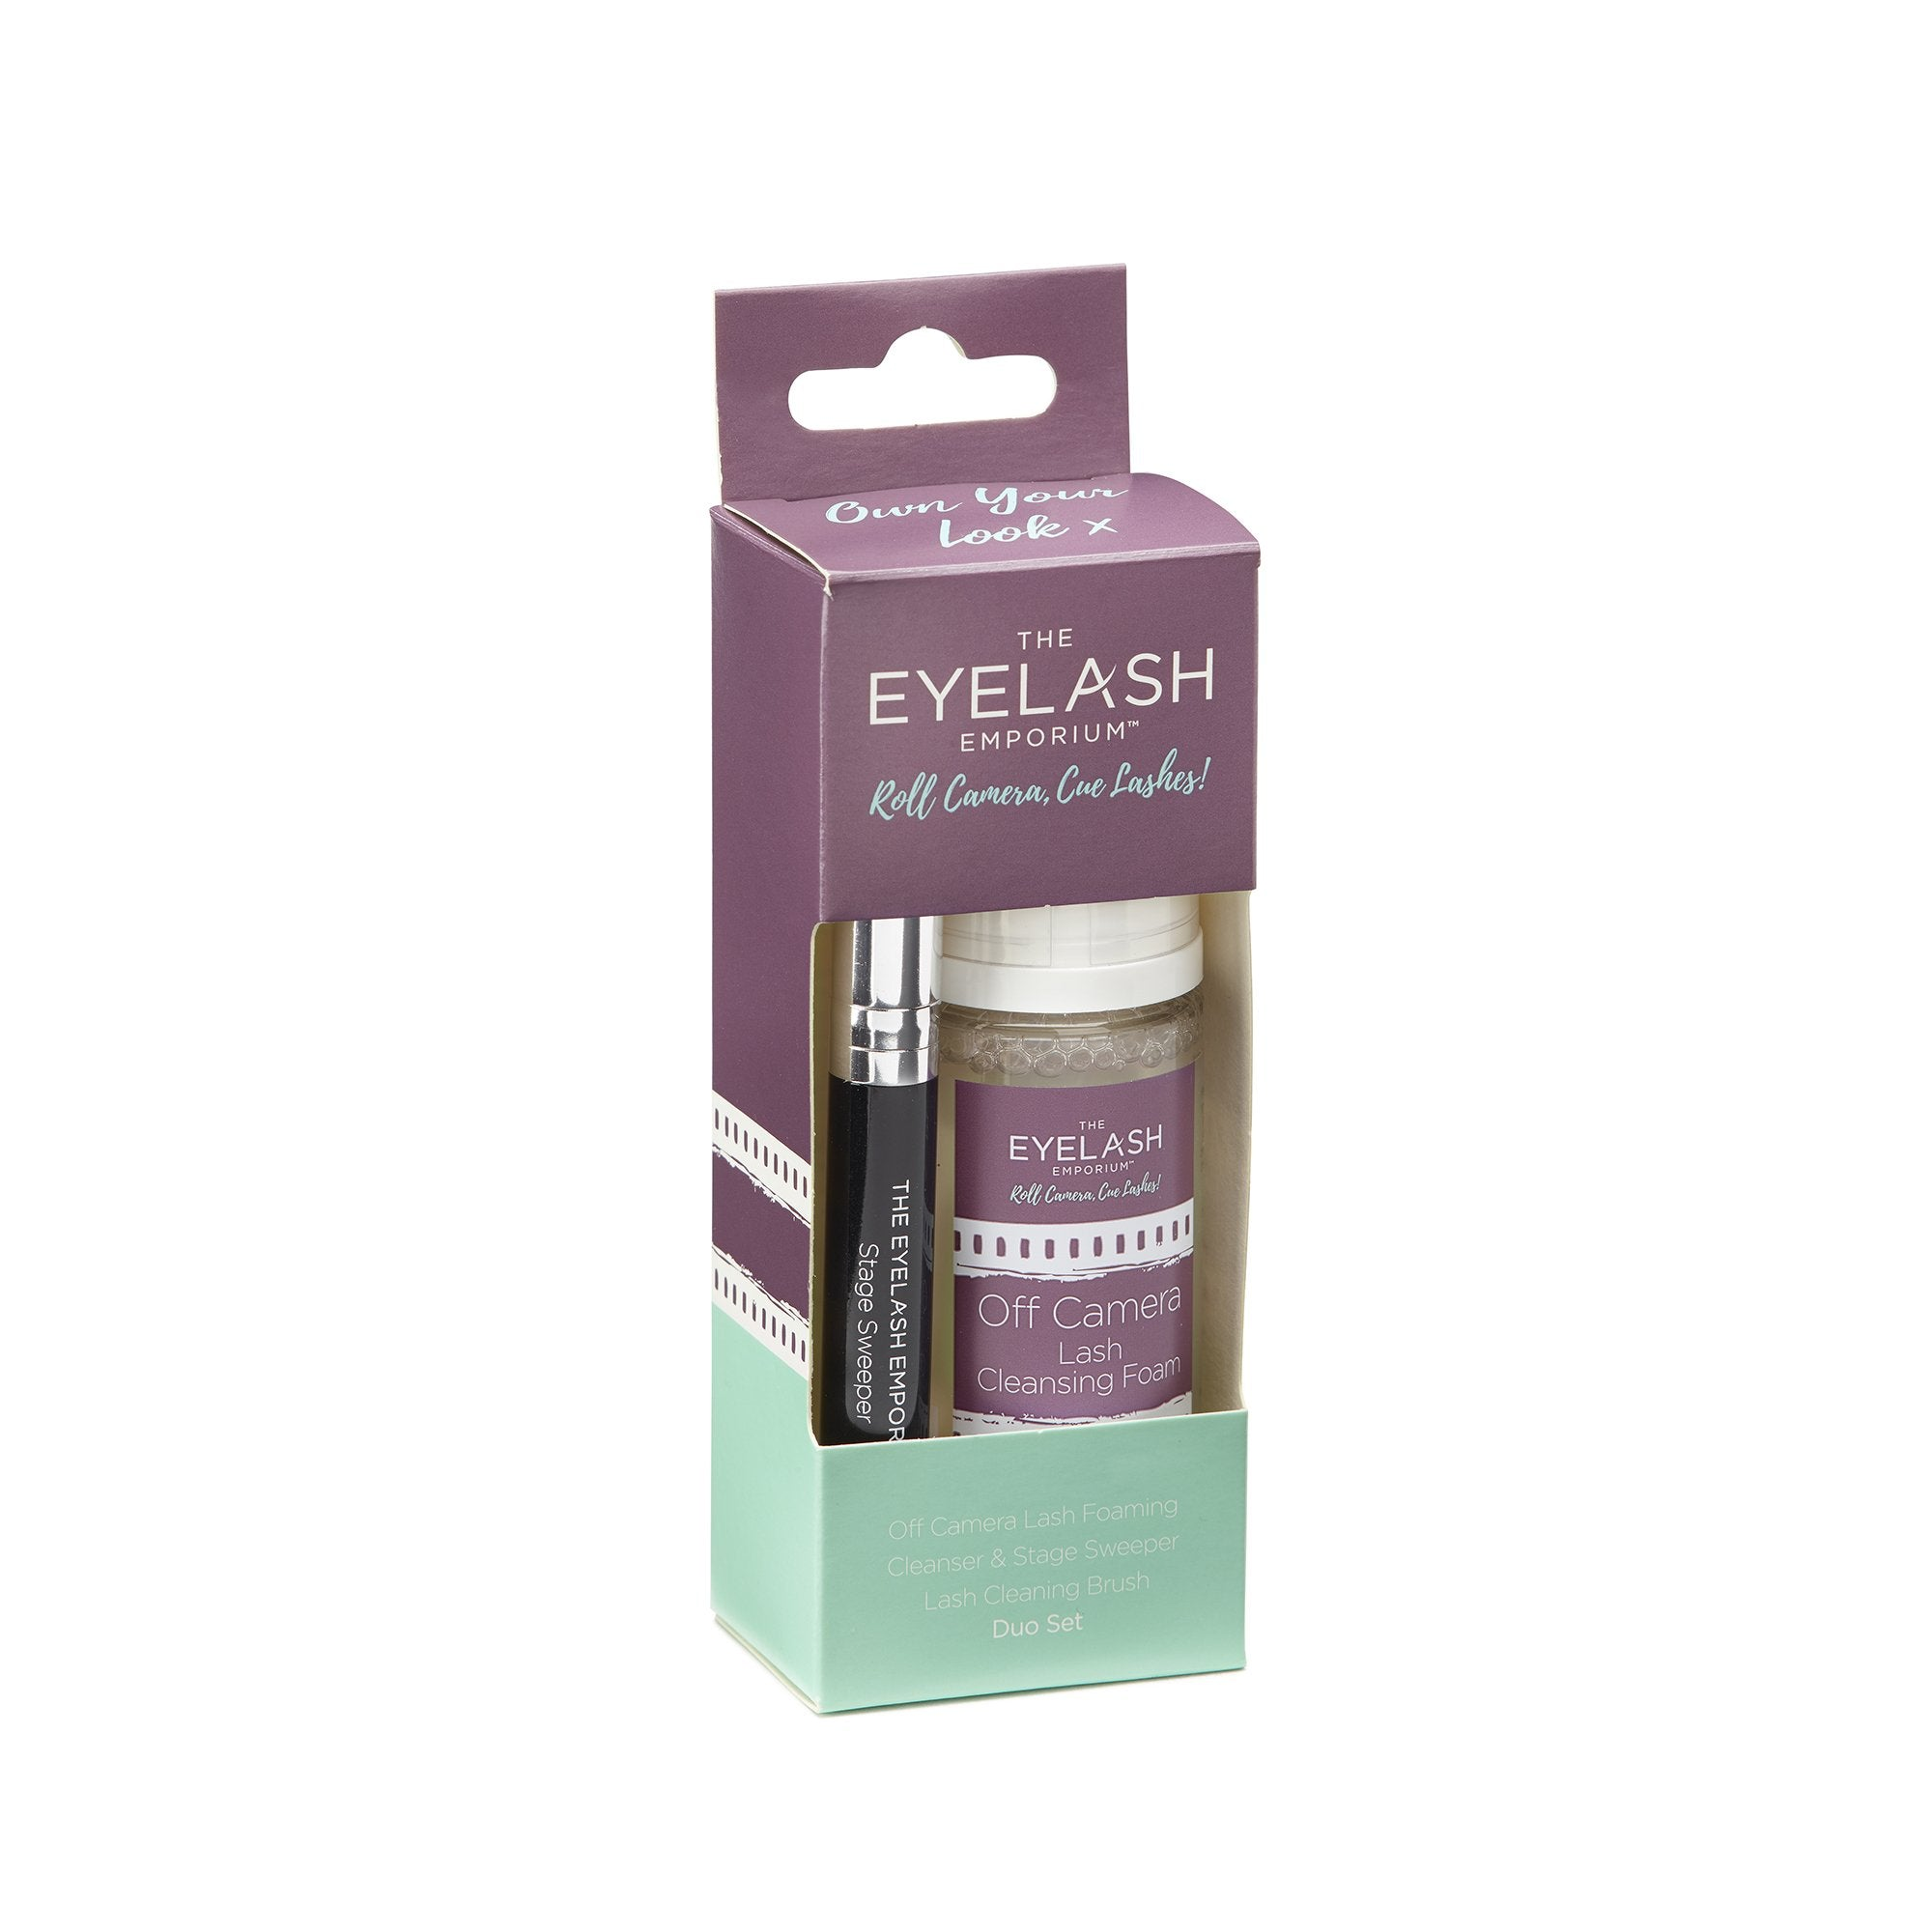 Lash Cleansing Set